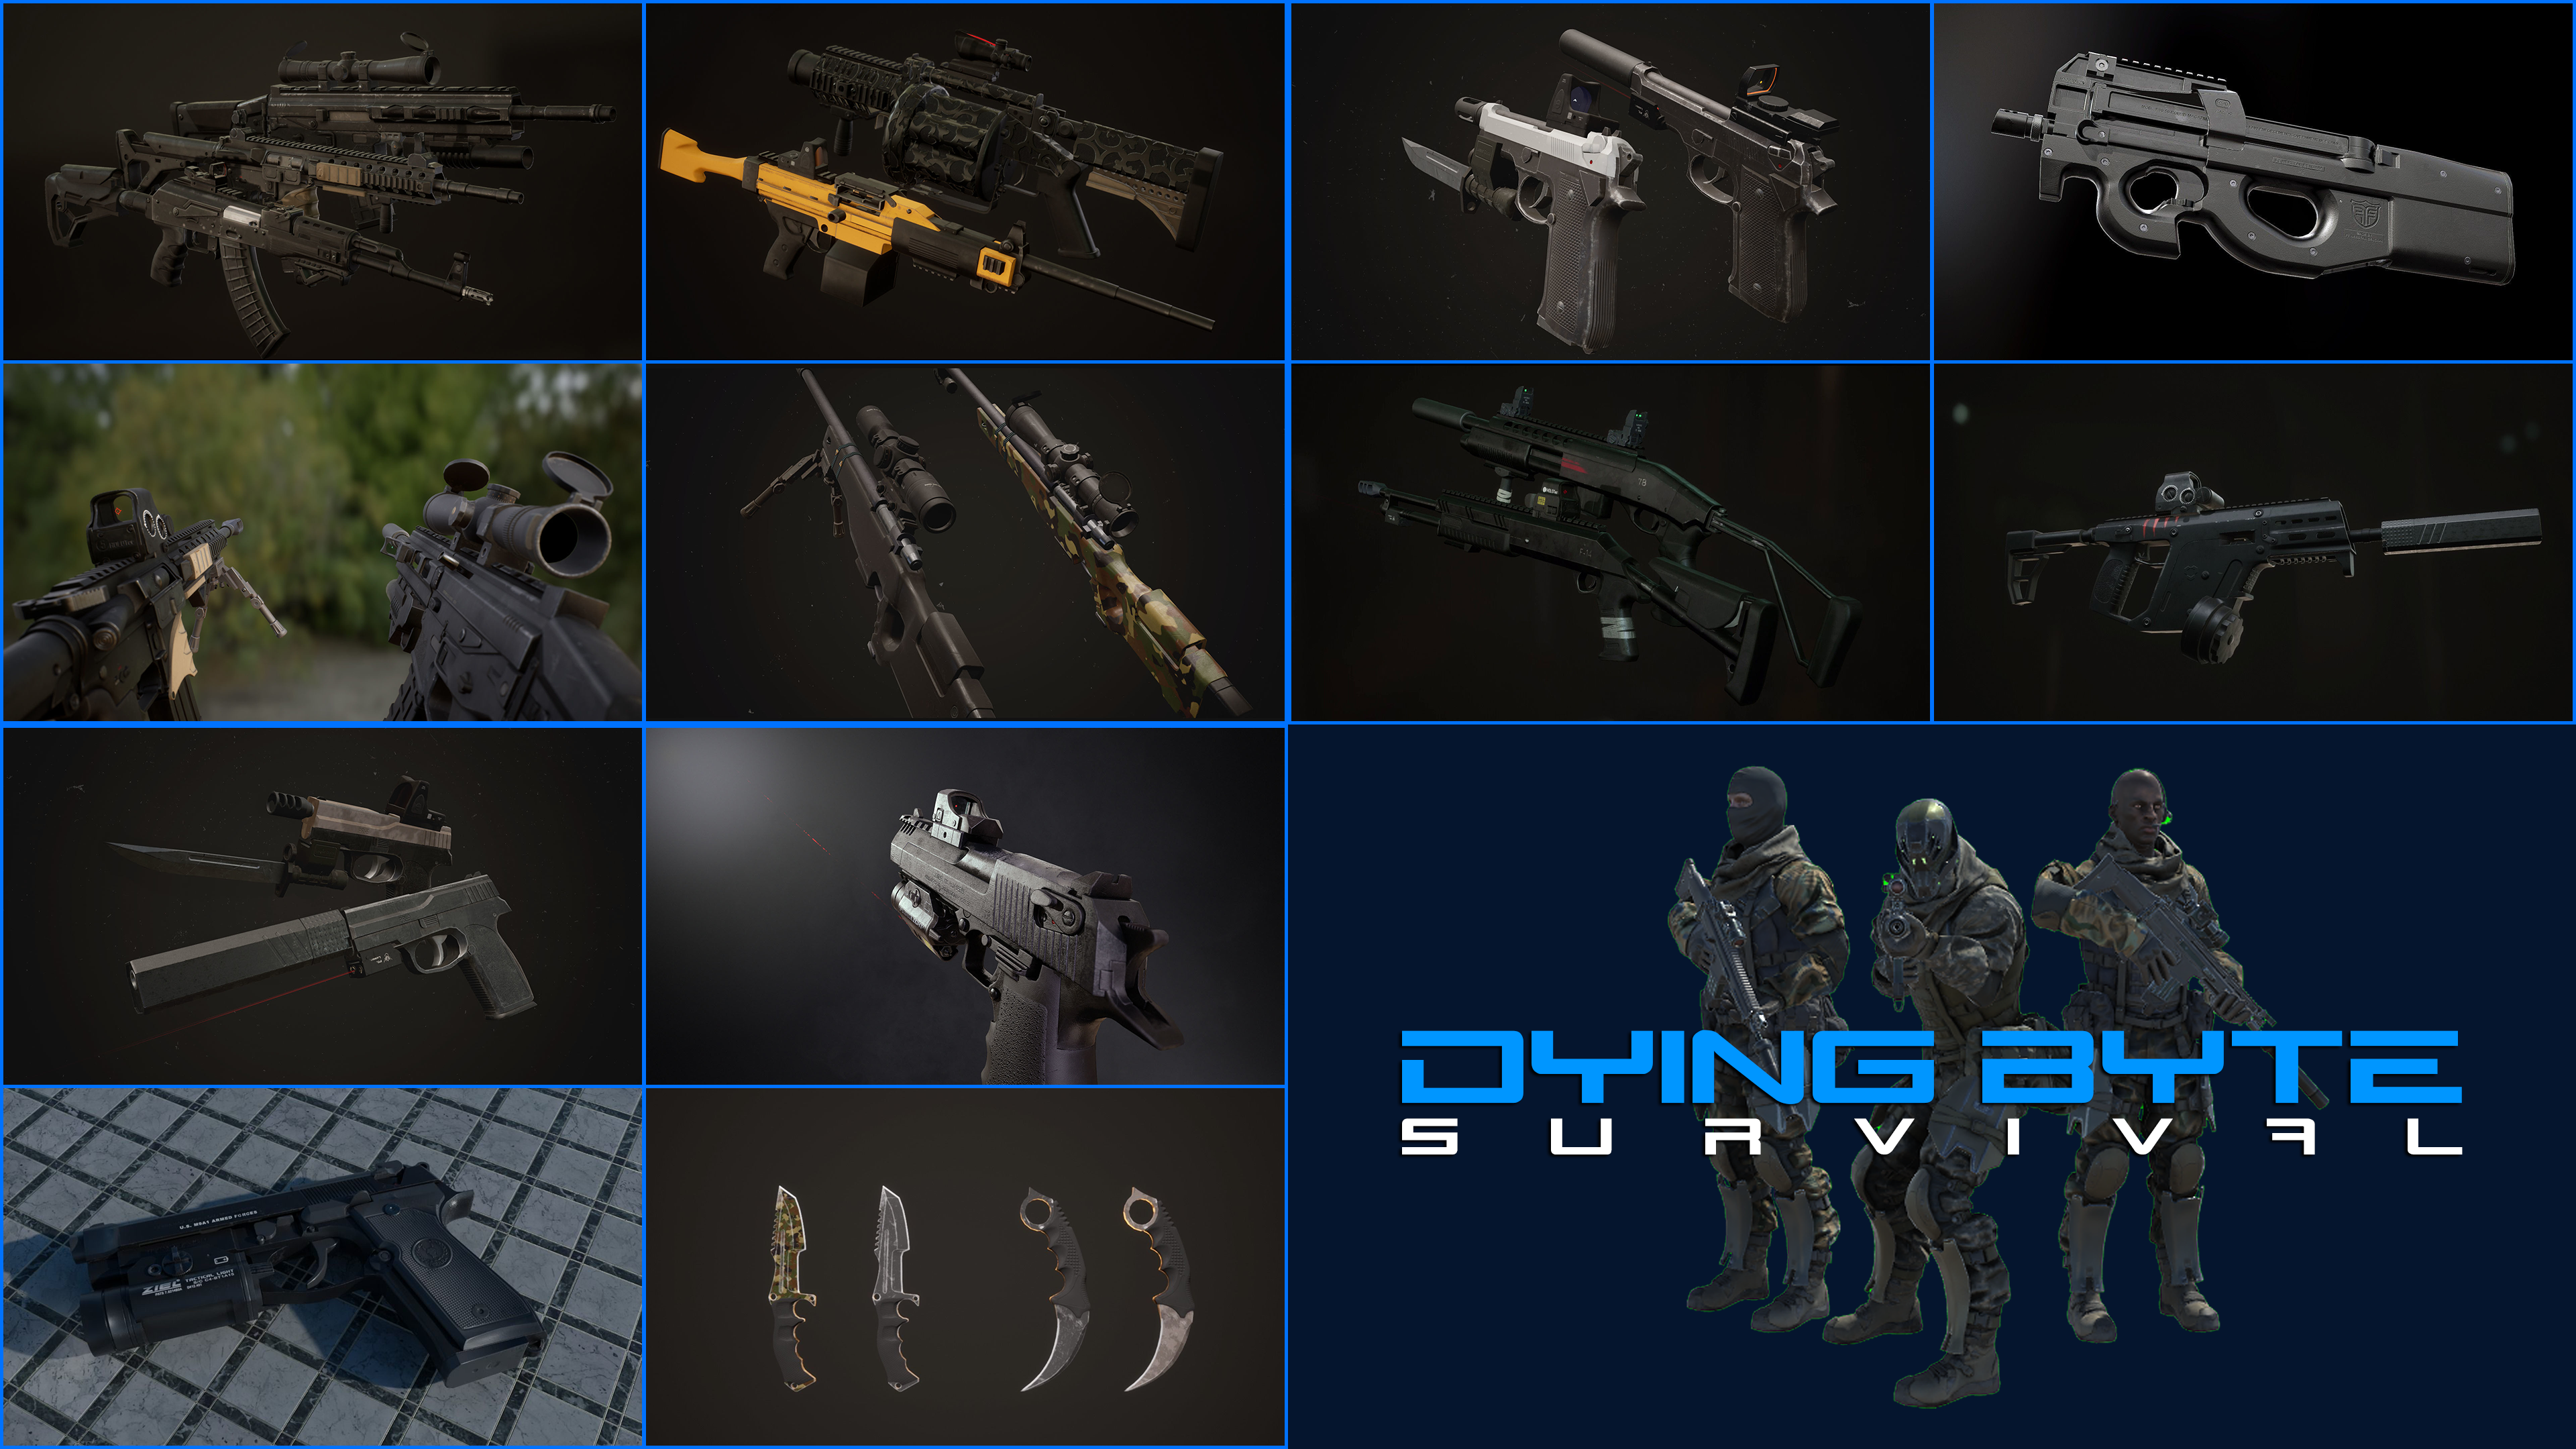 Dying_Byte_Weapons.png